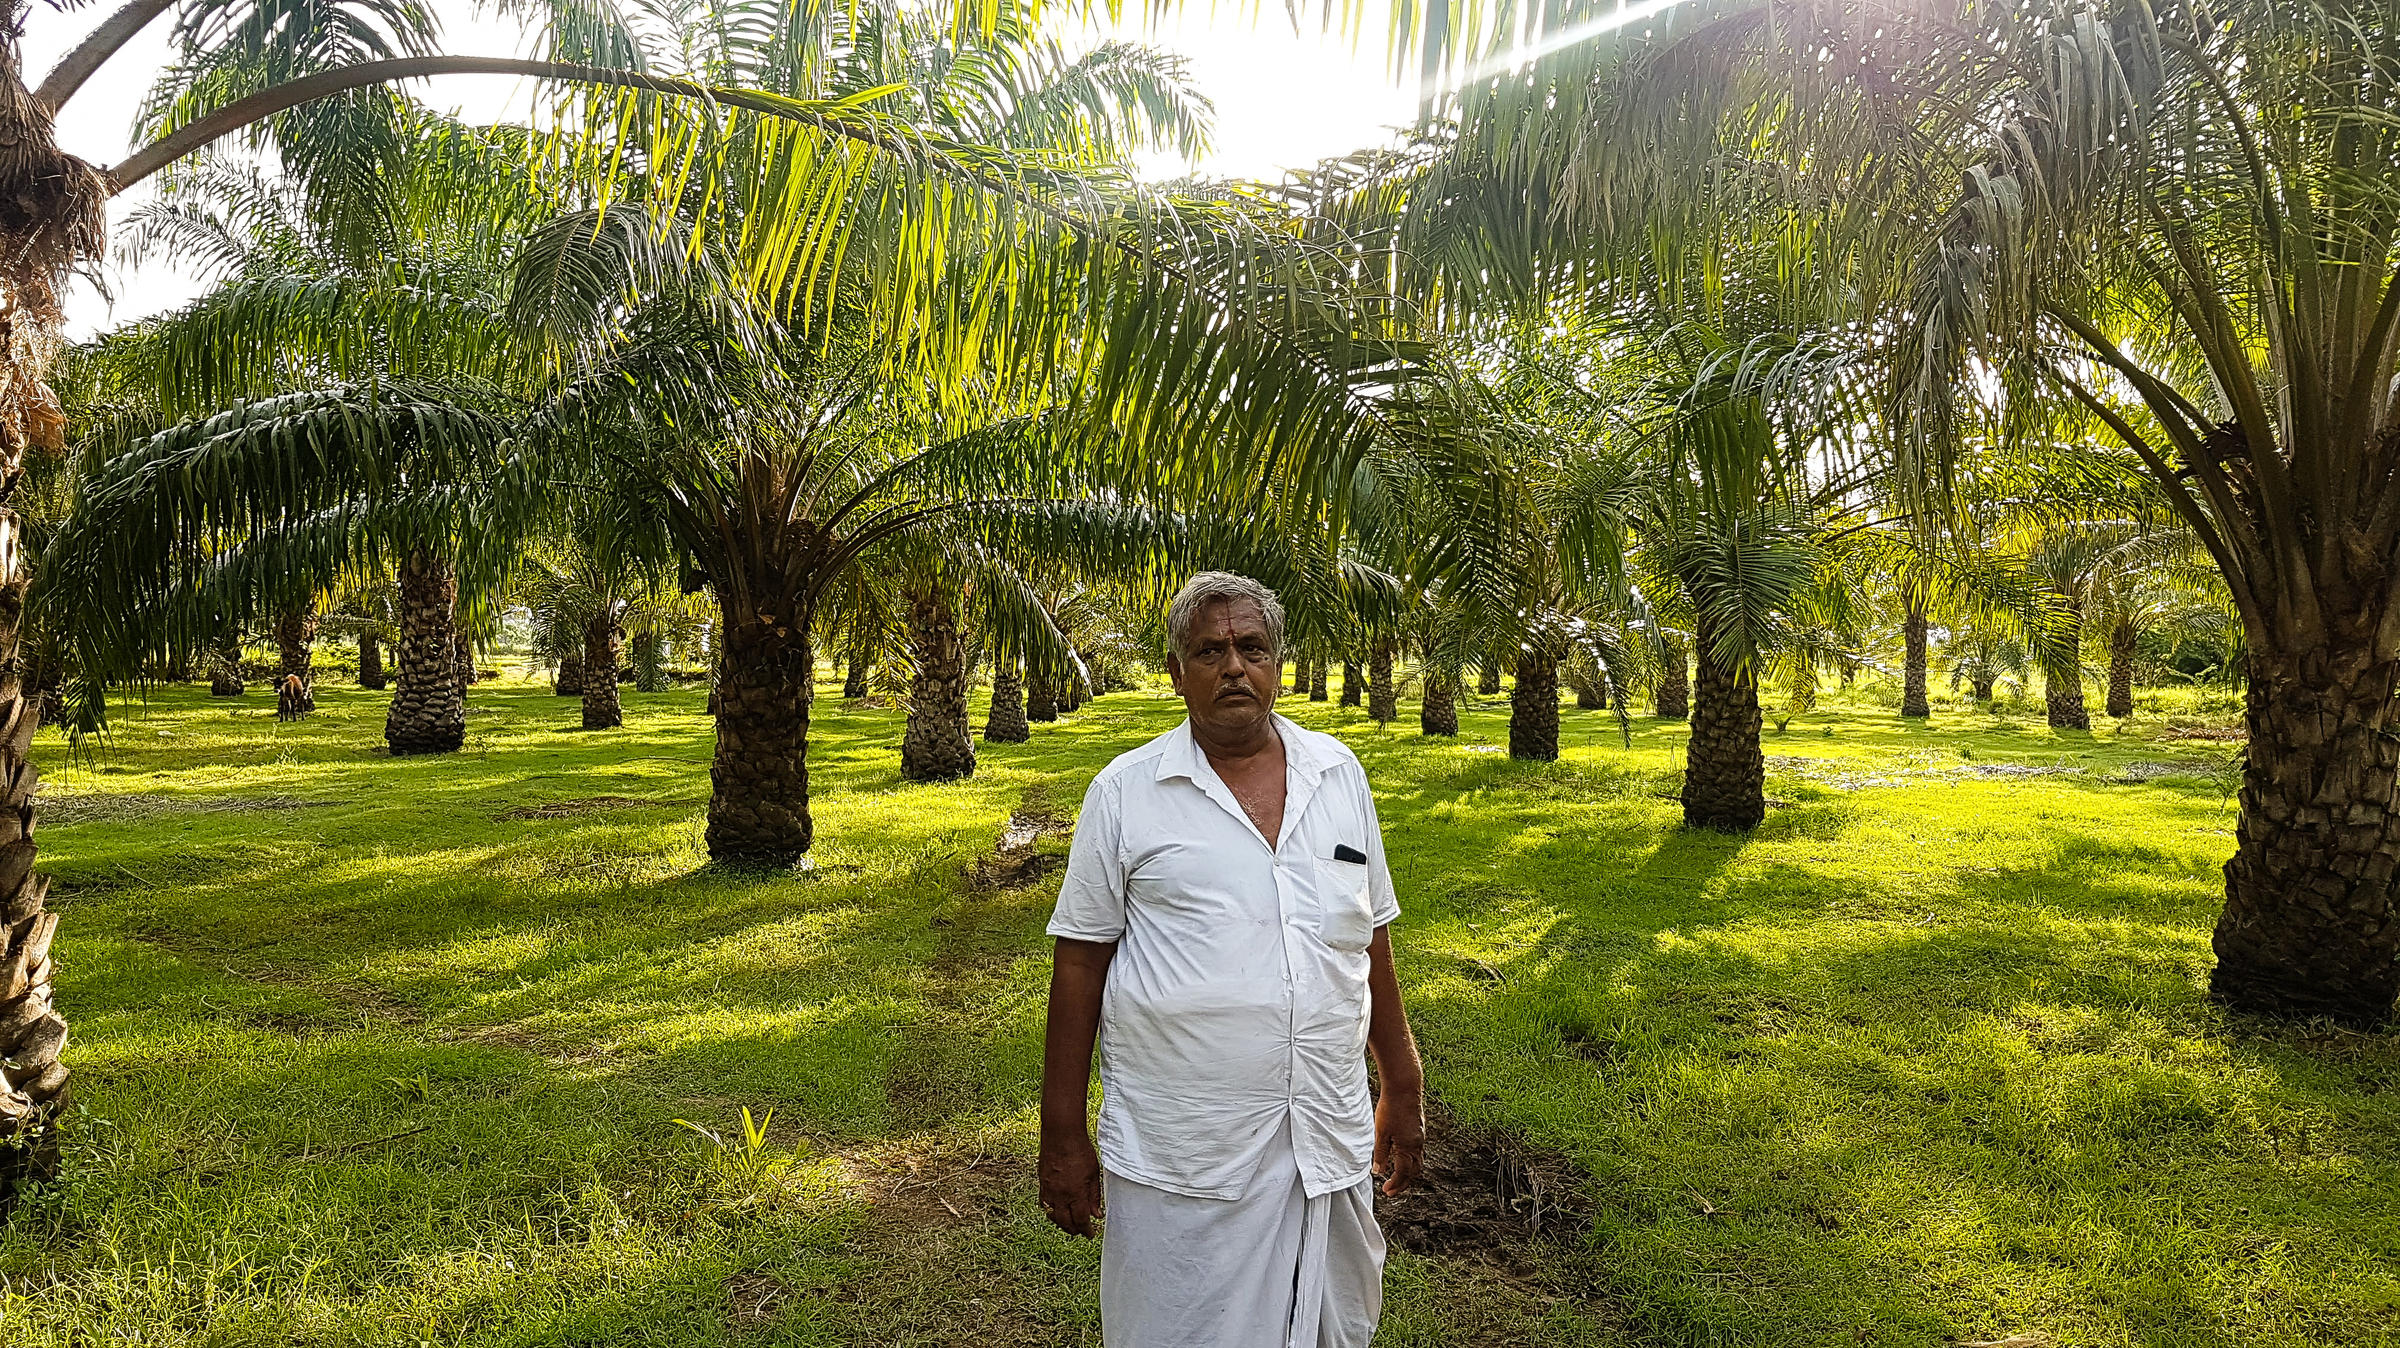 Amid Palm Oil Boycott, India Wants To Produce More Of It | NPR Illinois